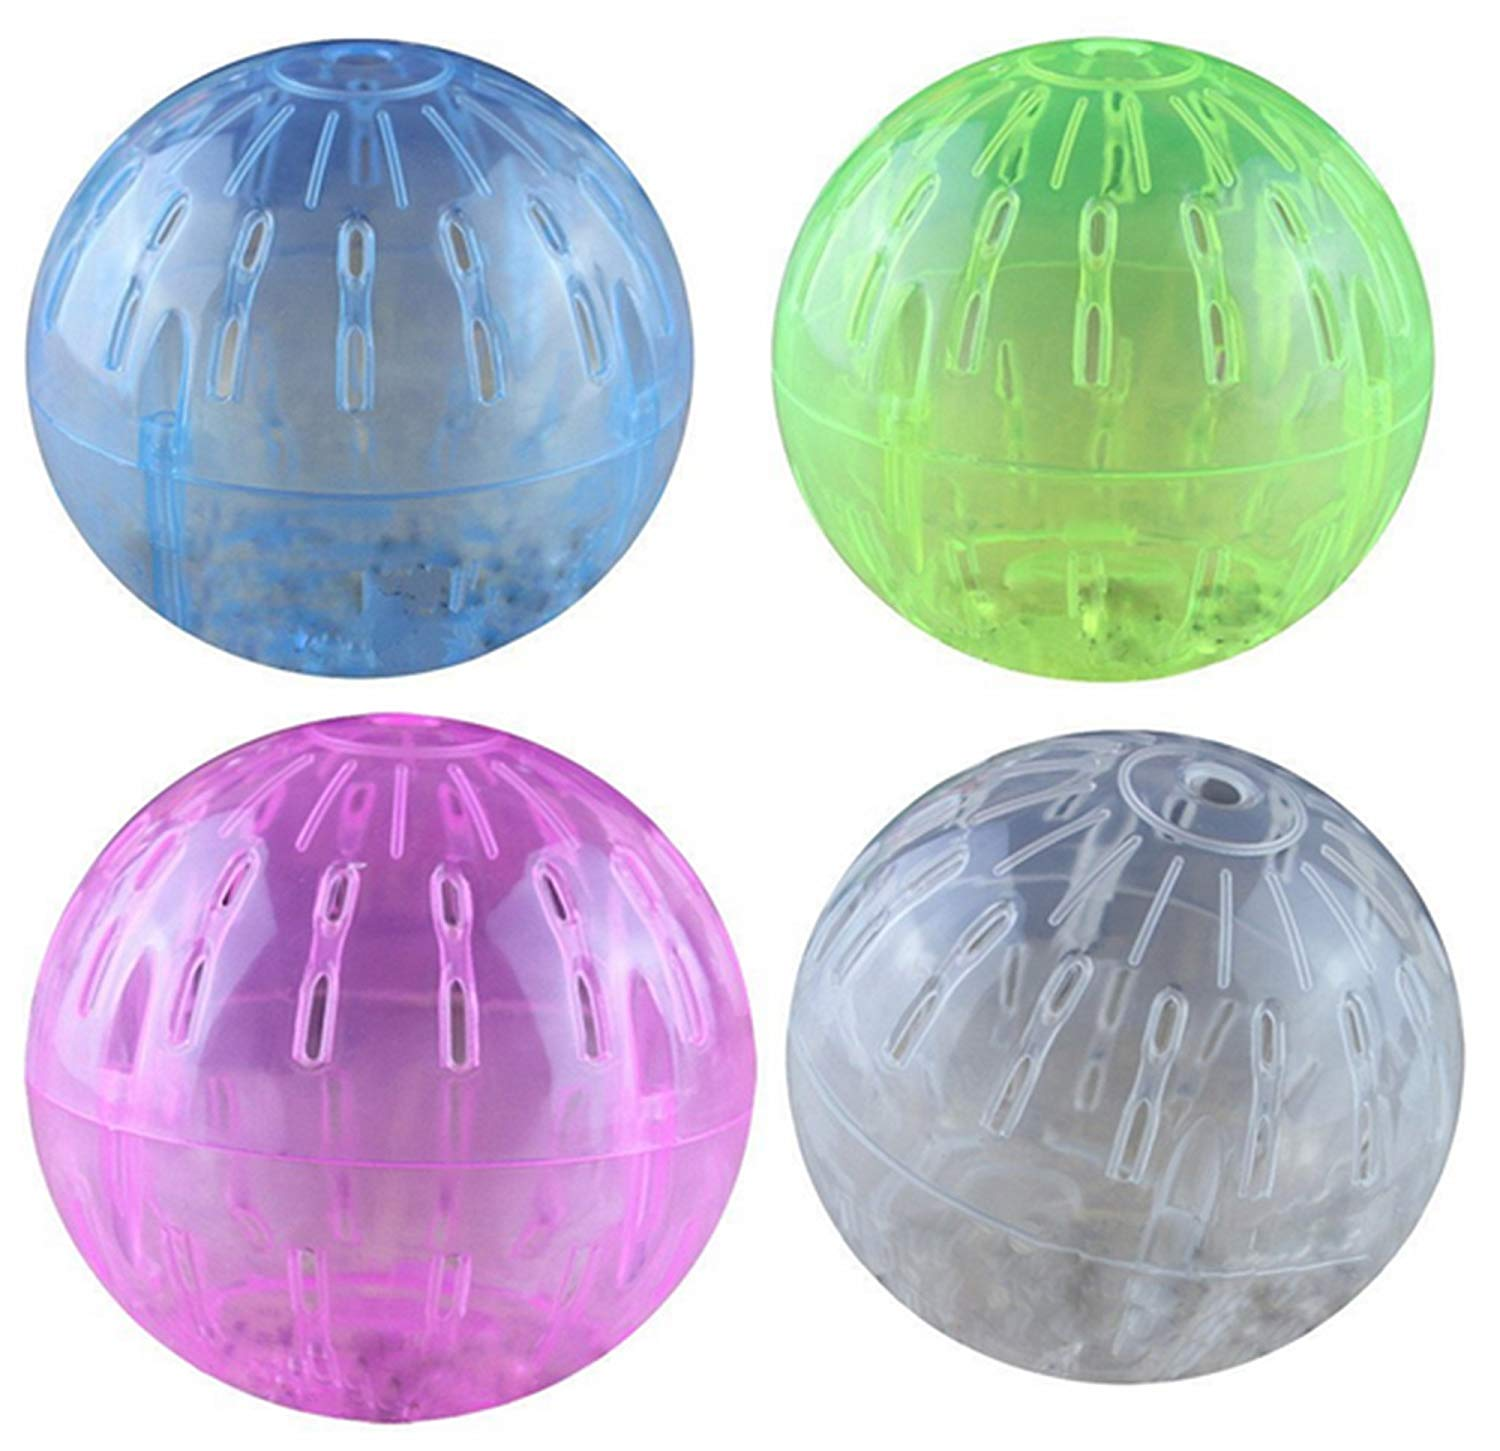 Hamster Ball, Hamster Crystal Ball, Hamster Running Ball, Play Plastic Toy Exercise Ball for Small Animals, Randomly Color